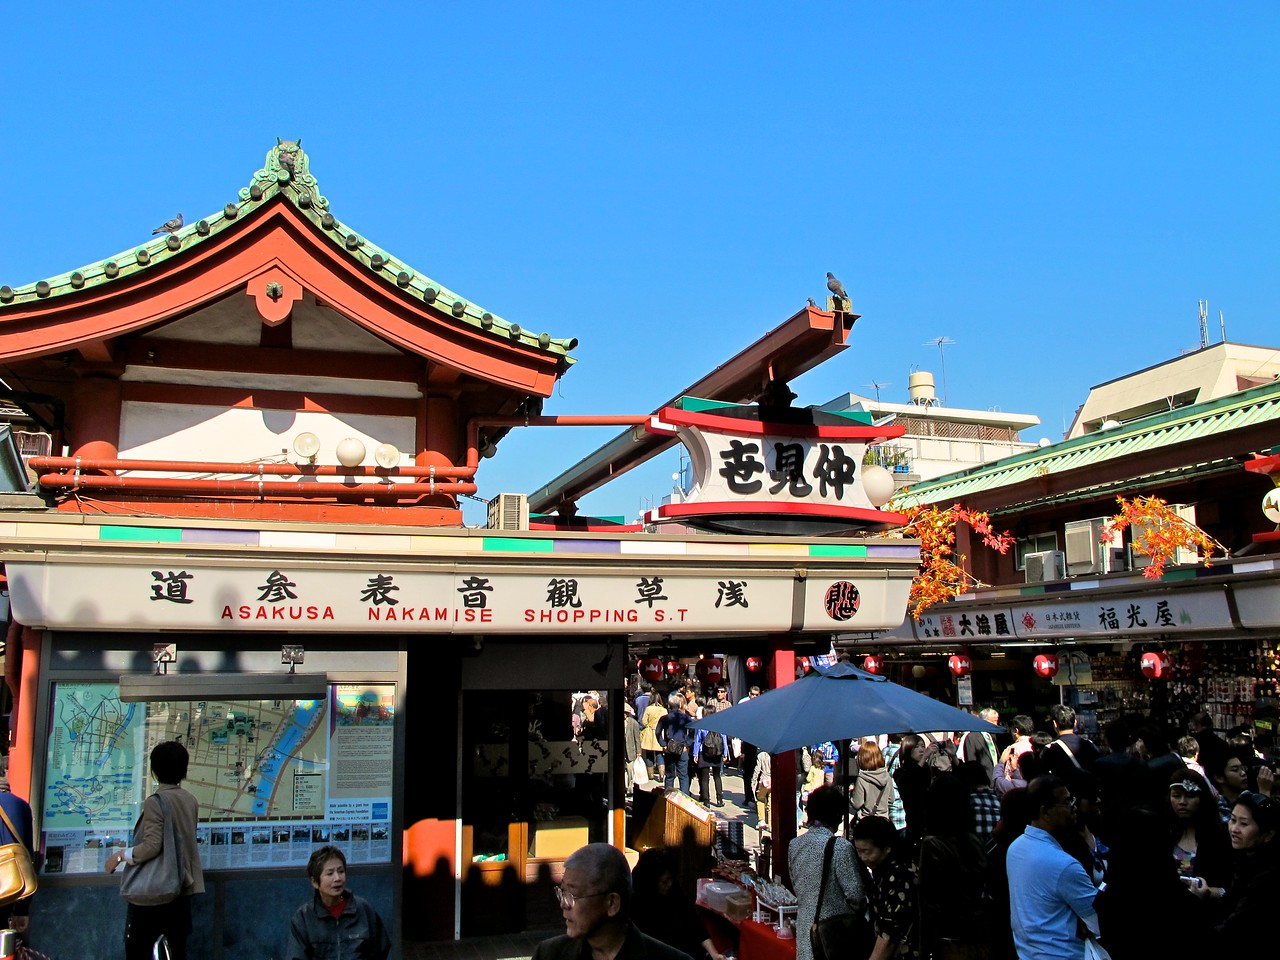 Between the gate and the temple, is the Nakamise shopping street.